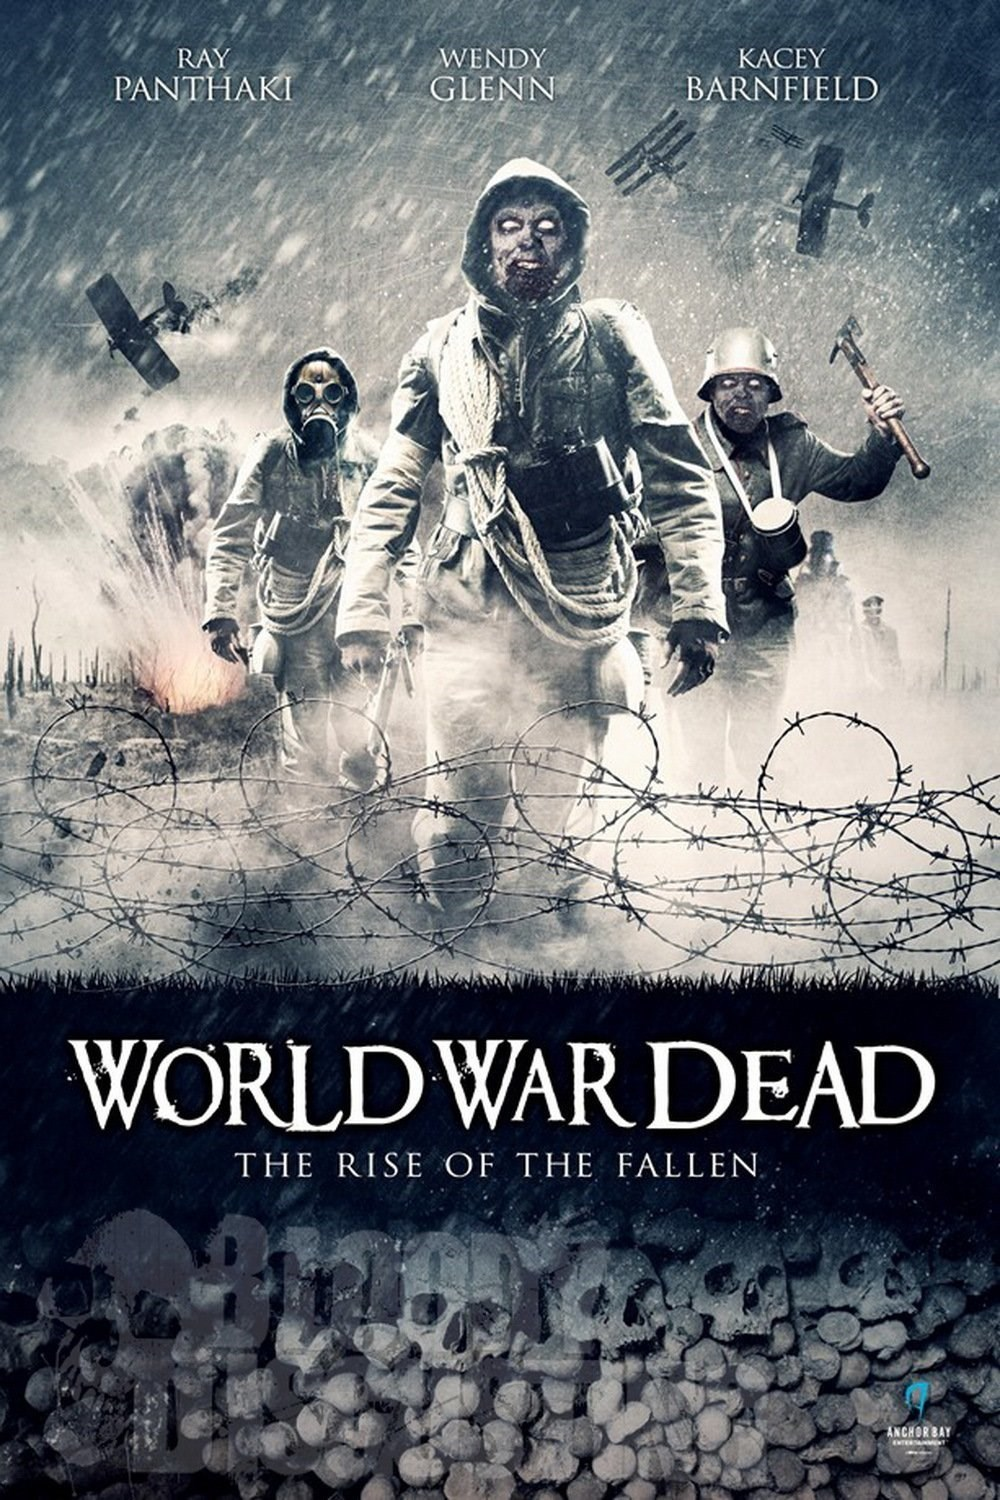 world-war-dead-rise-of-the-fallen Portrait Poster.jpg